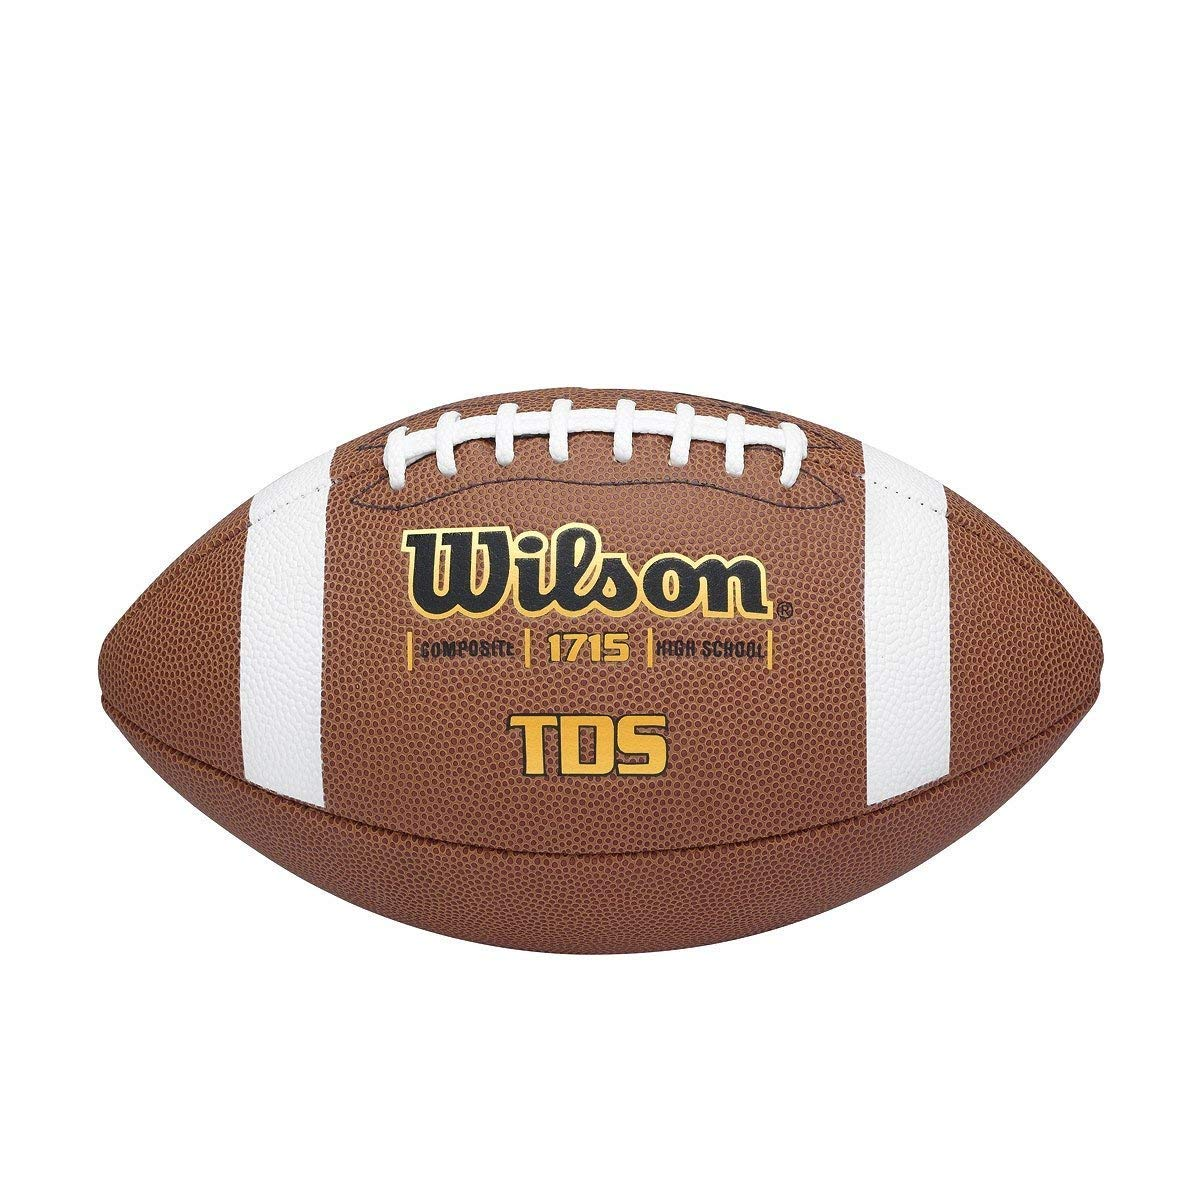 NFL Wilson TDS Composite Official Football Adulte (Unisexe) Marron 9